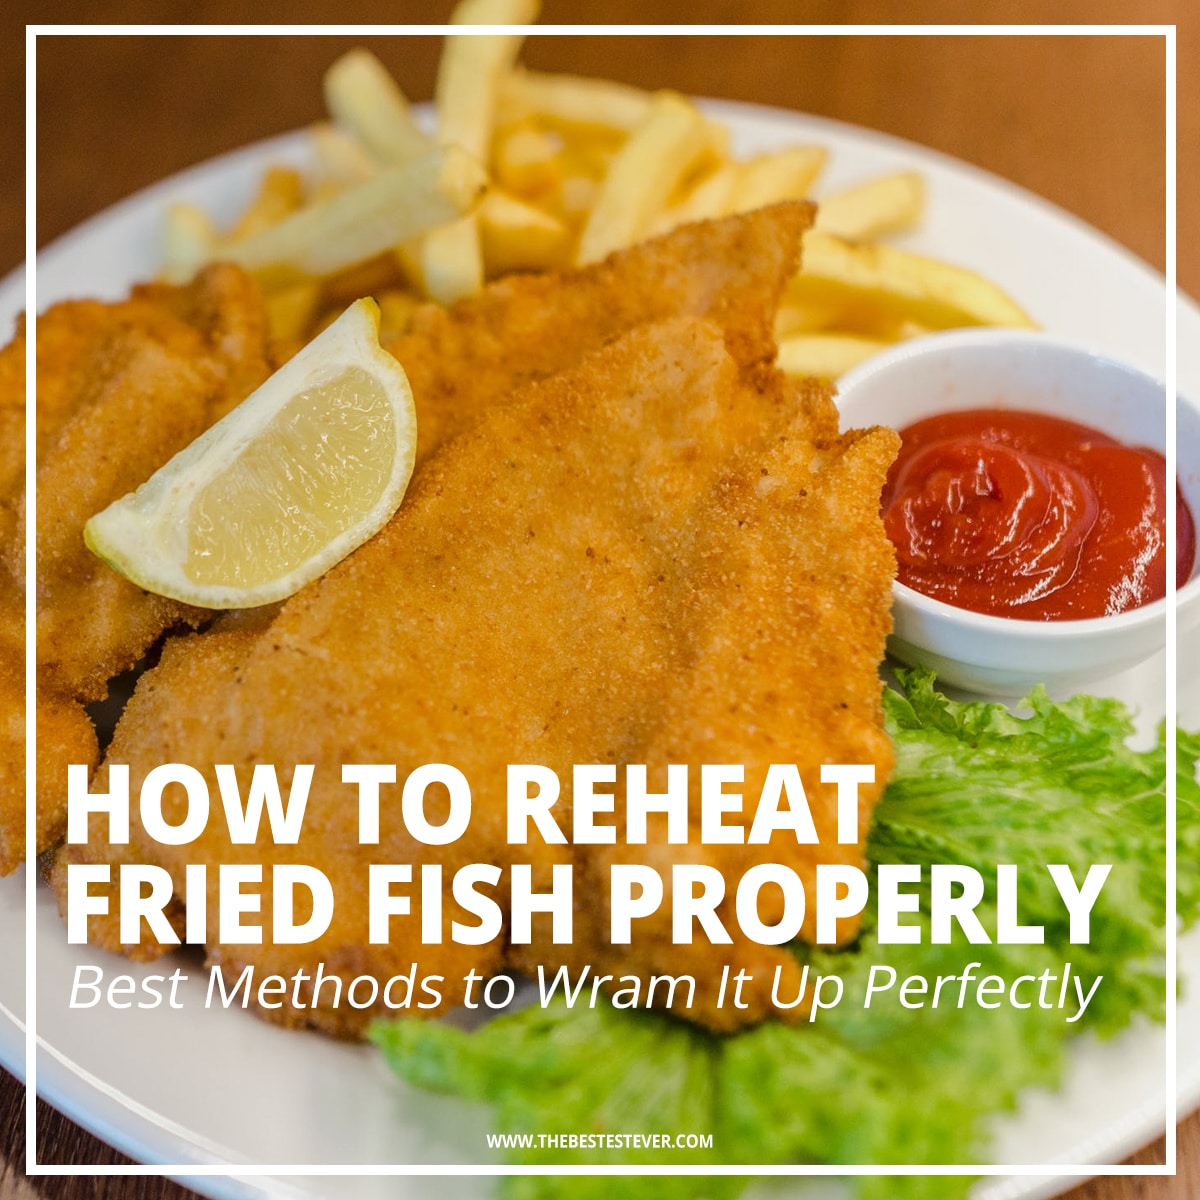 How to Reheat Fried Fish: 4 Best Methods to Use